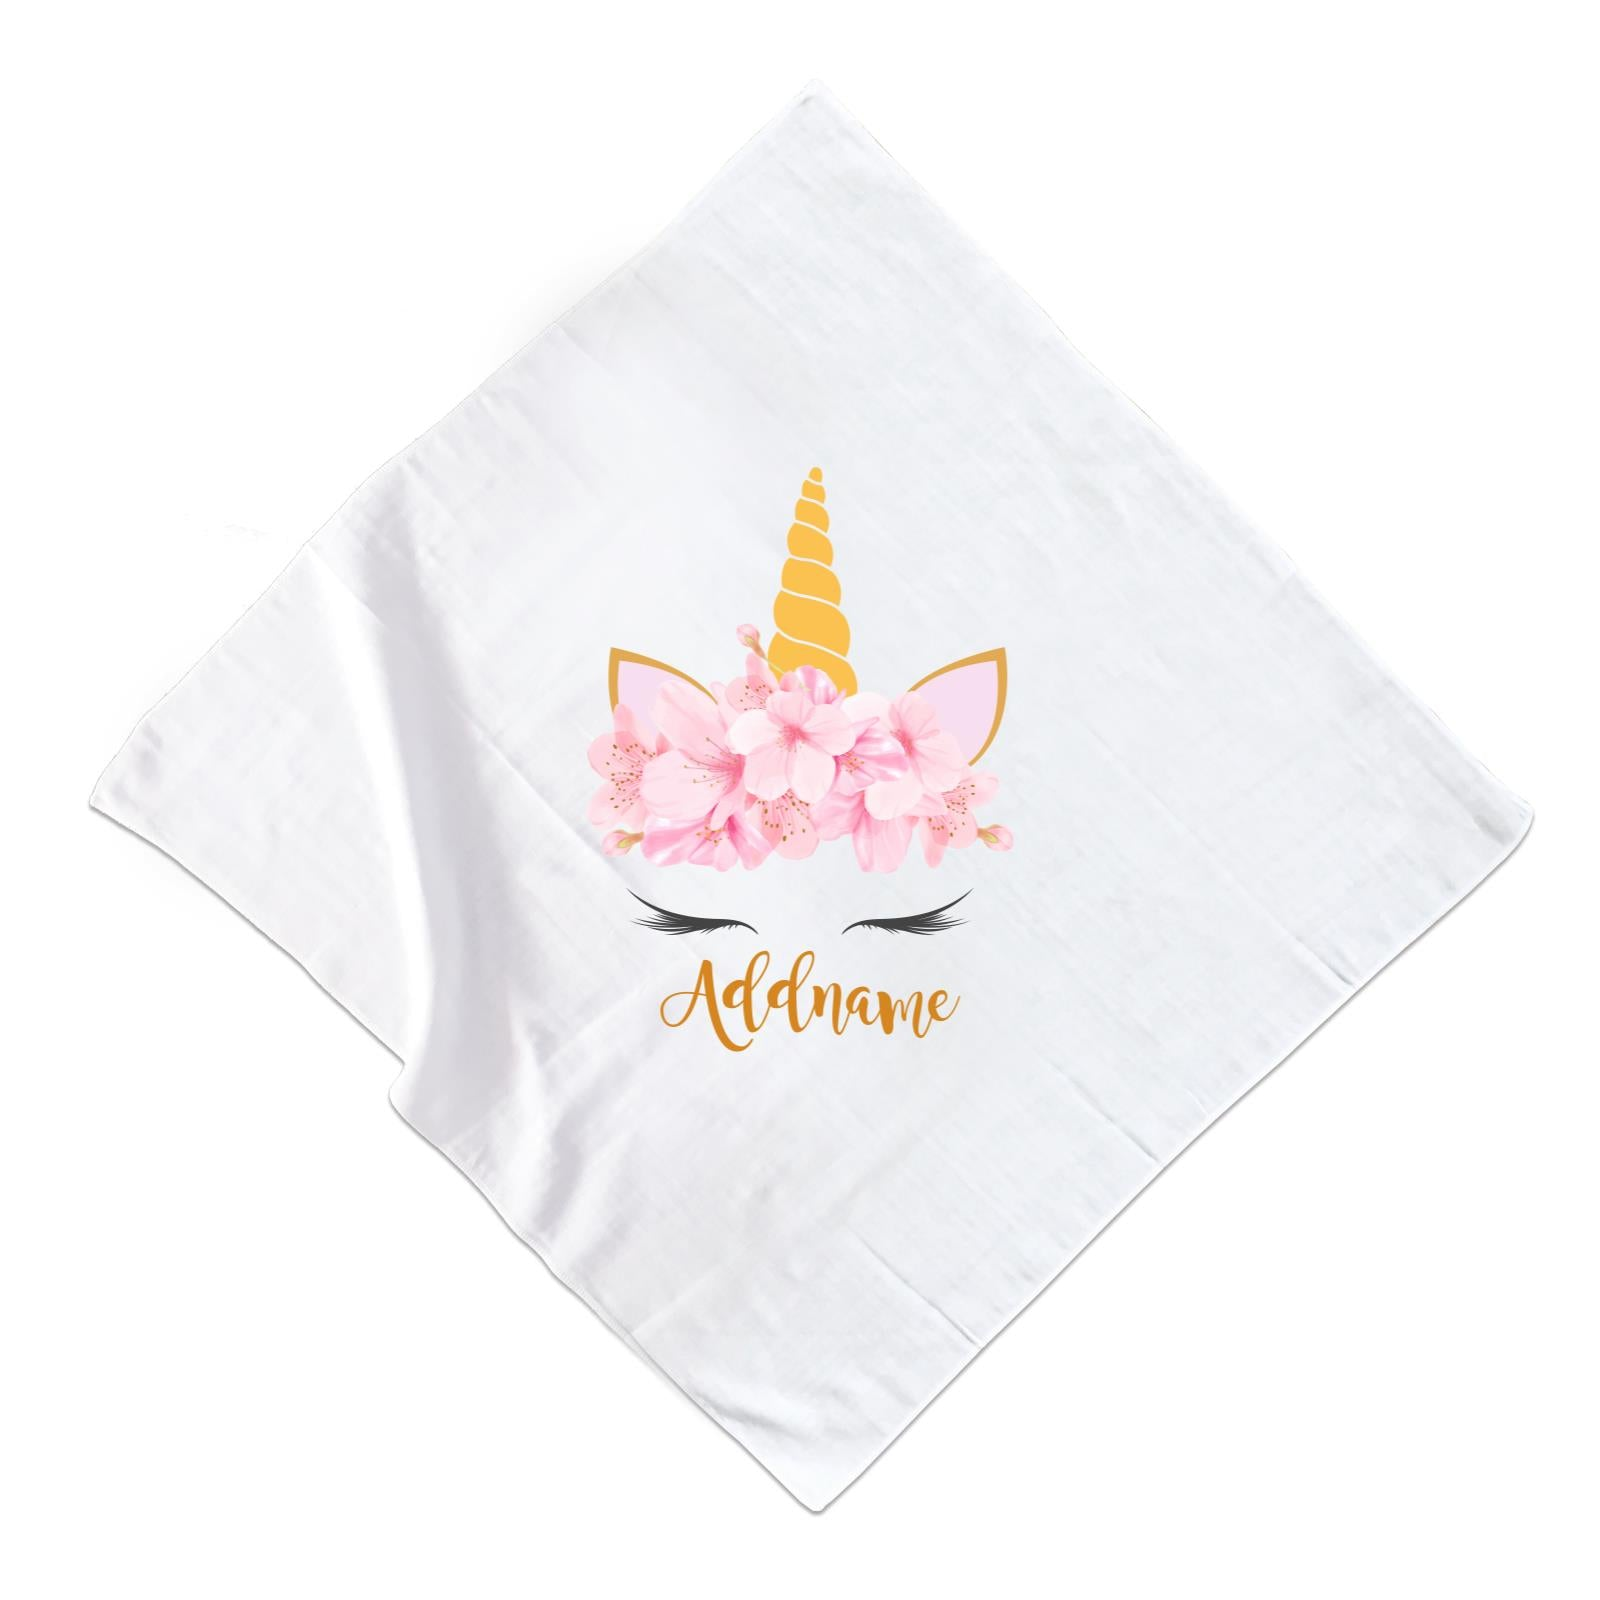 Pink Flower Garland Unicorn Face Addname Muslin  Square